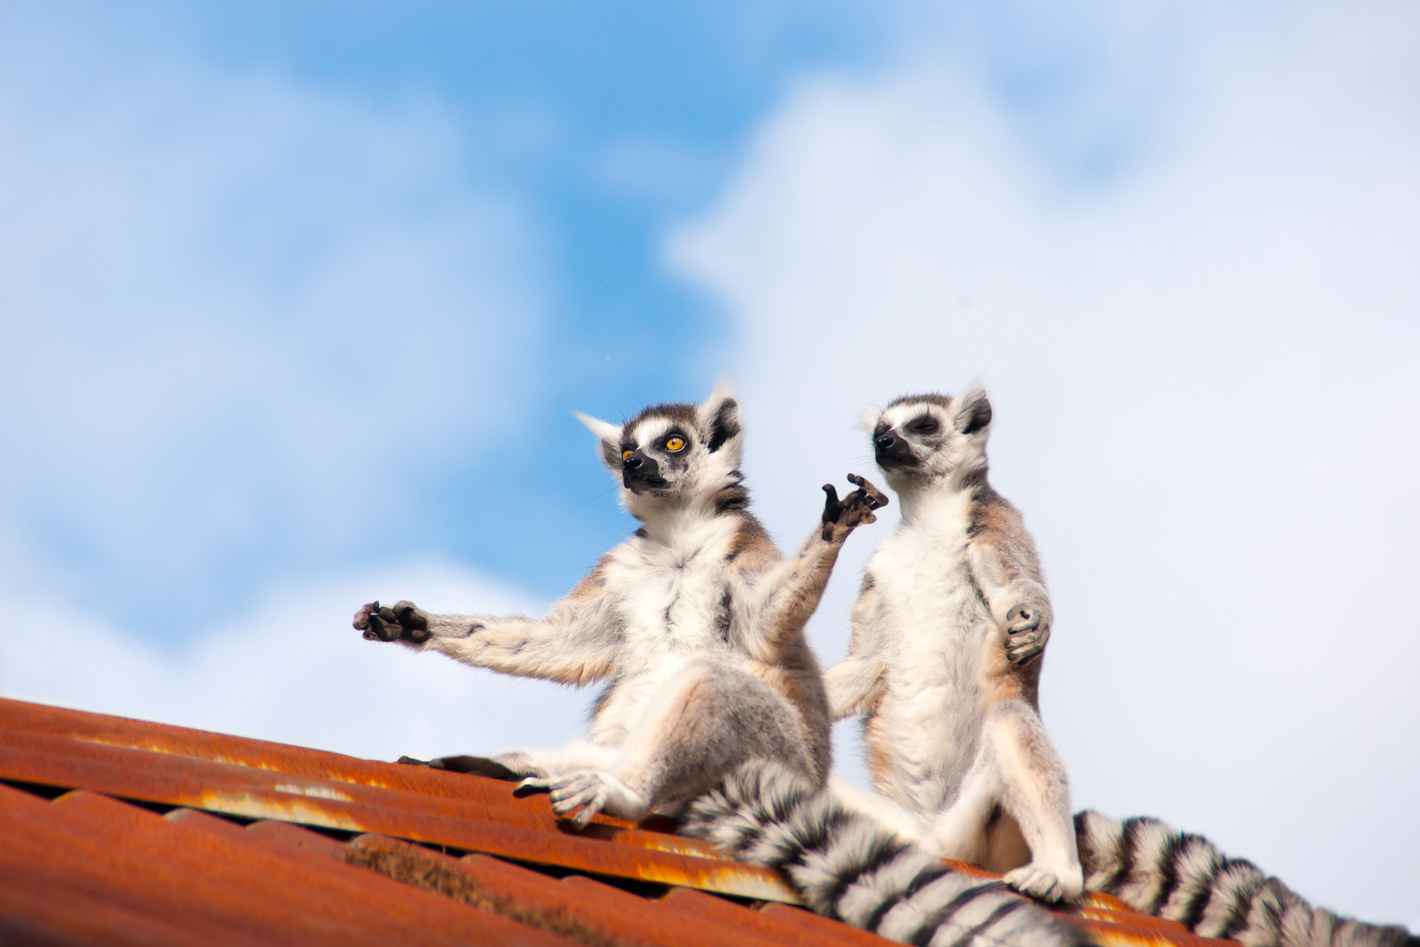 Meditating lemurs on a roof